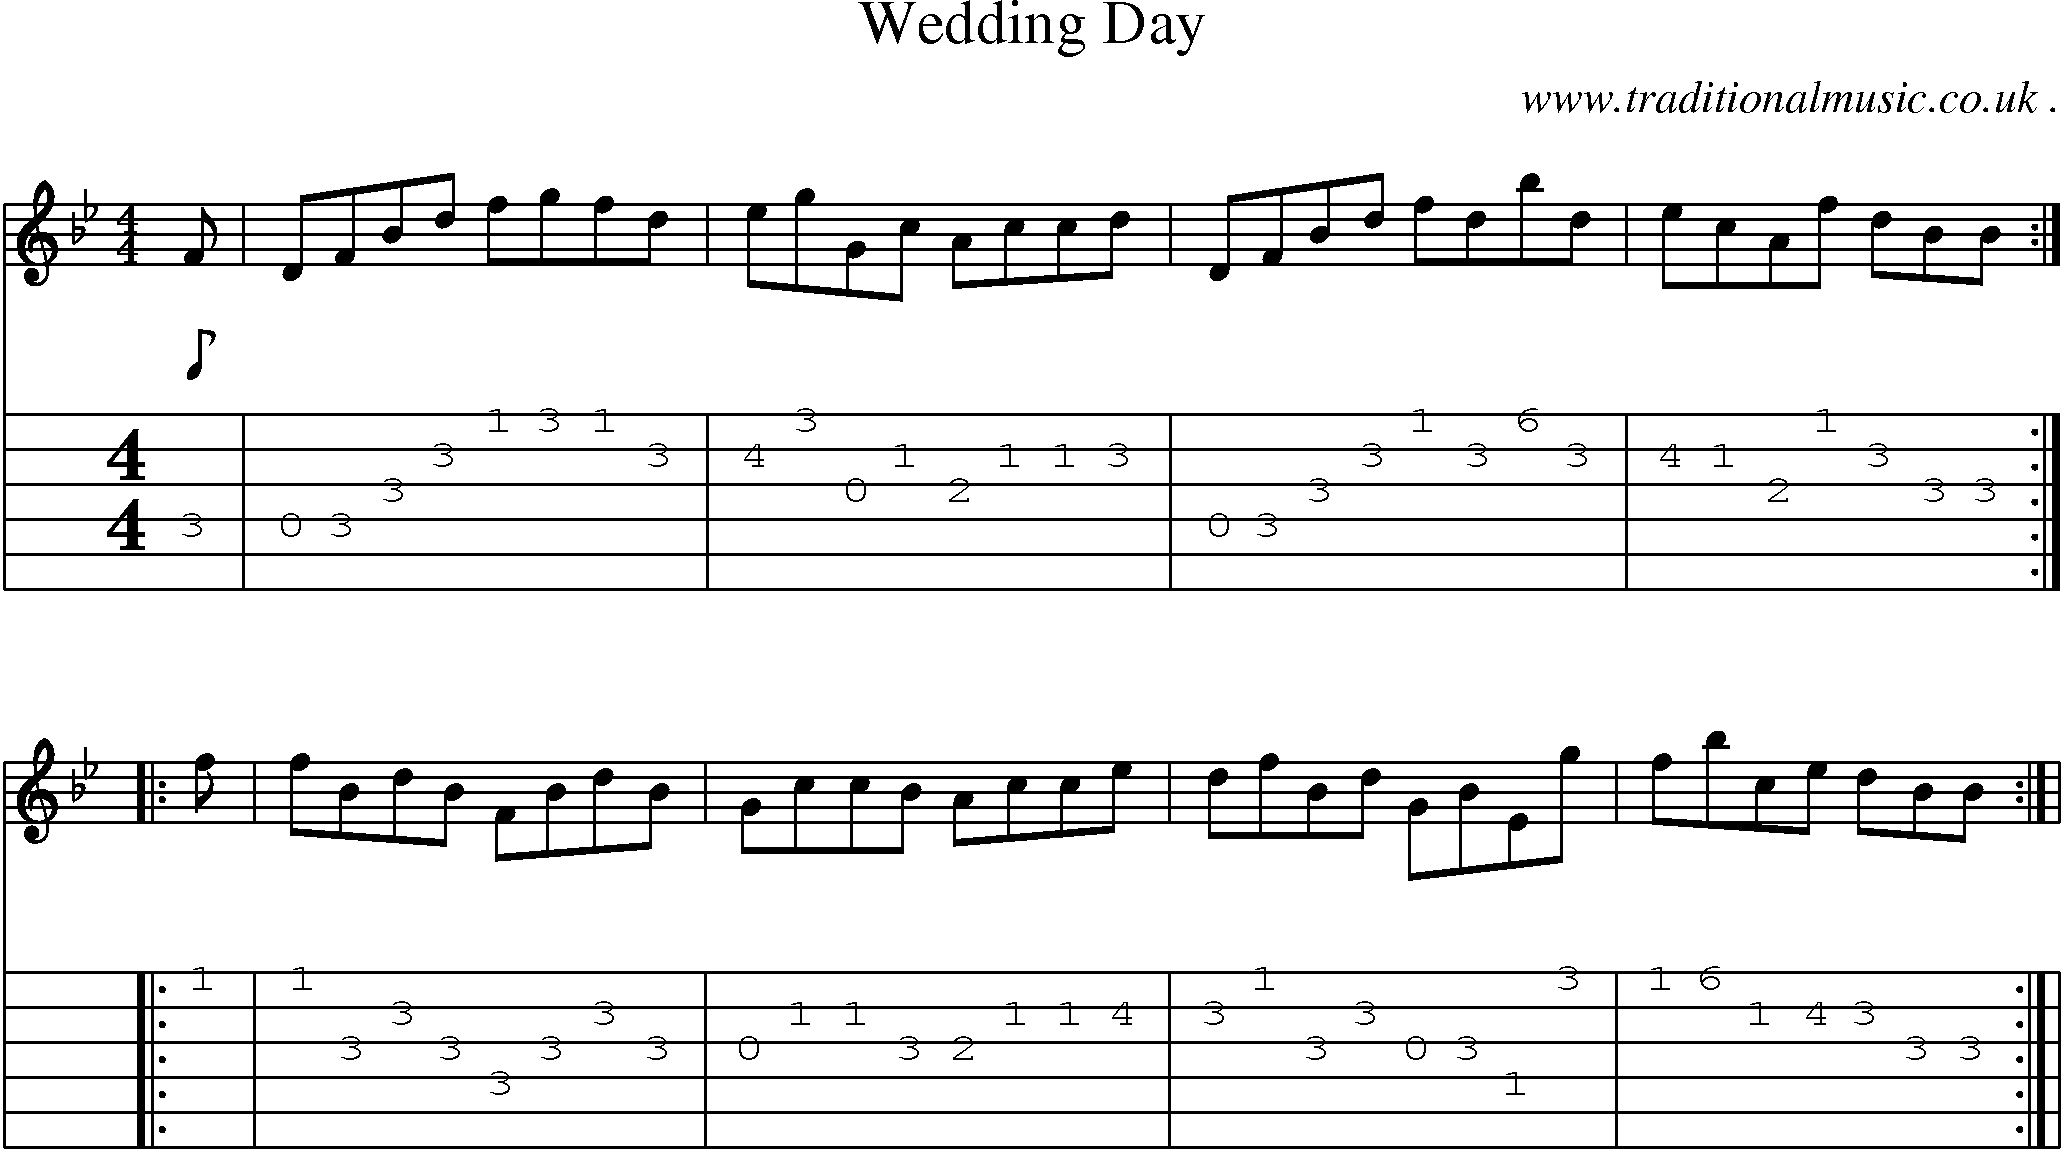 Folk And Traditional Music Sheet Music Guitar Tab Mp3 Audio Midi And PDF For Wedding Day